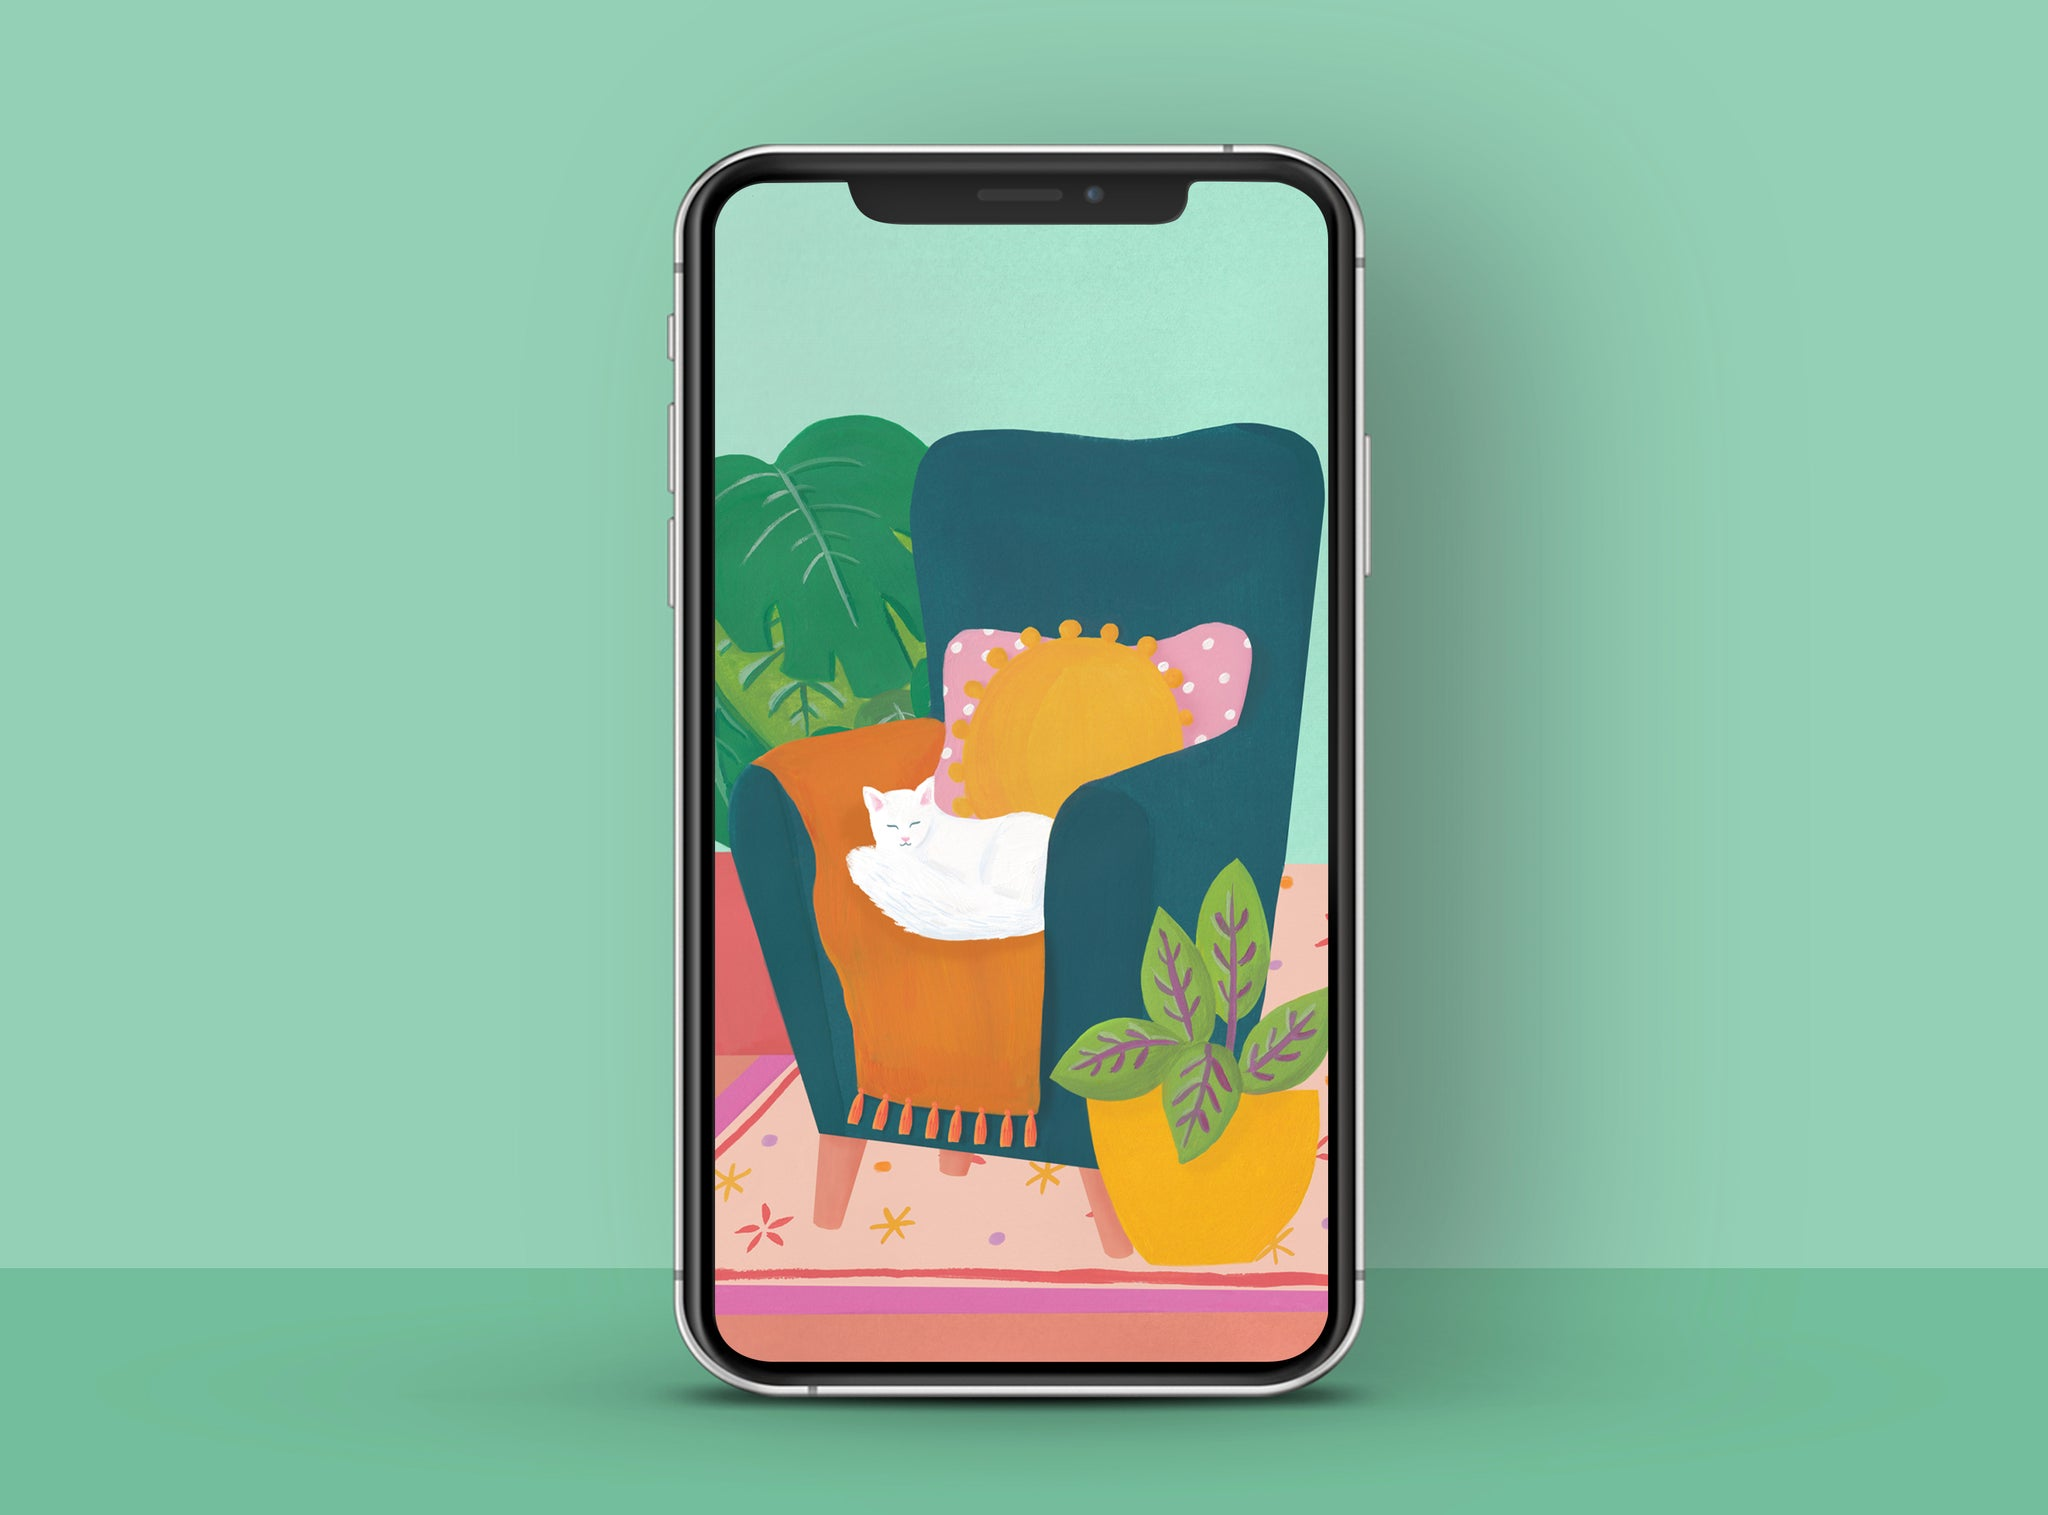 Cosy armchair with cute cat and houseplants, illustrated free phone wallpaper | Raspberry Blossom